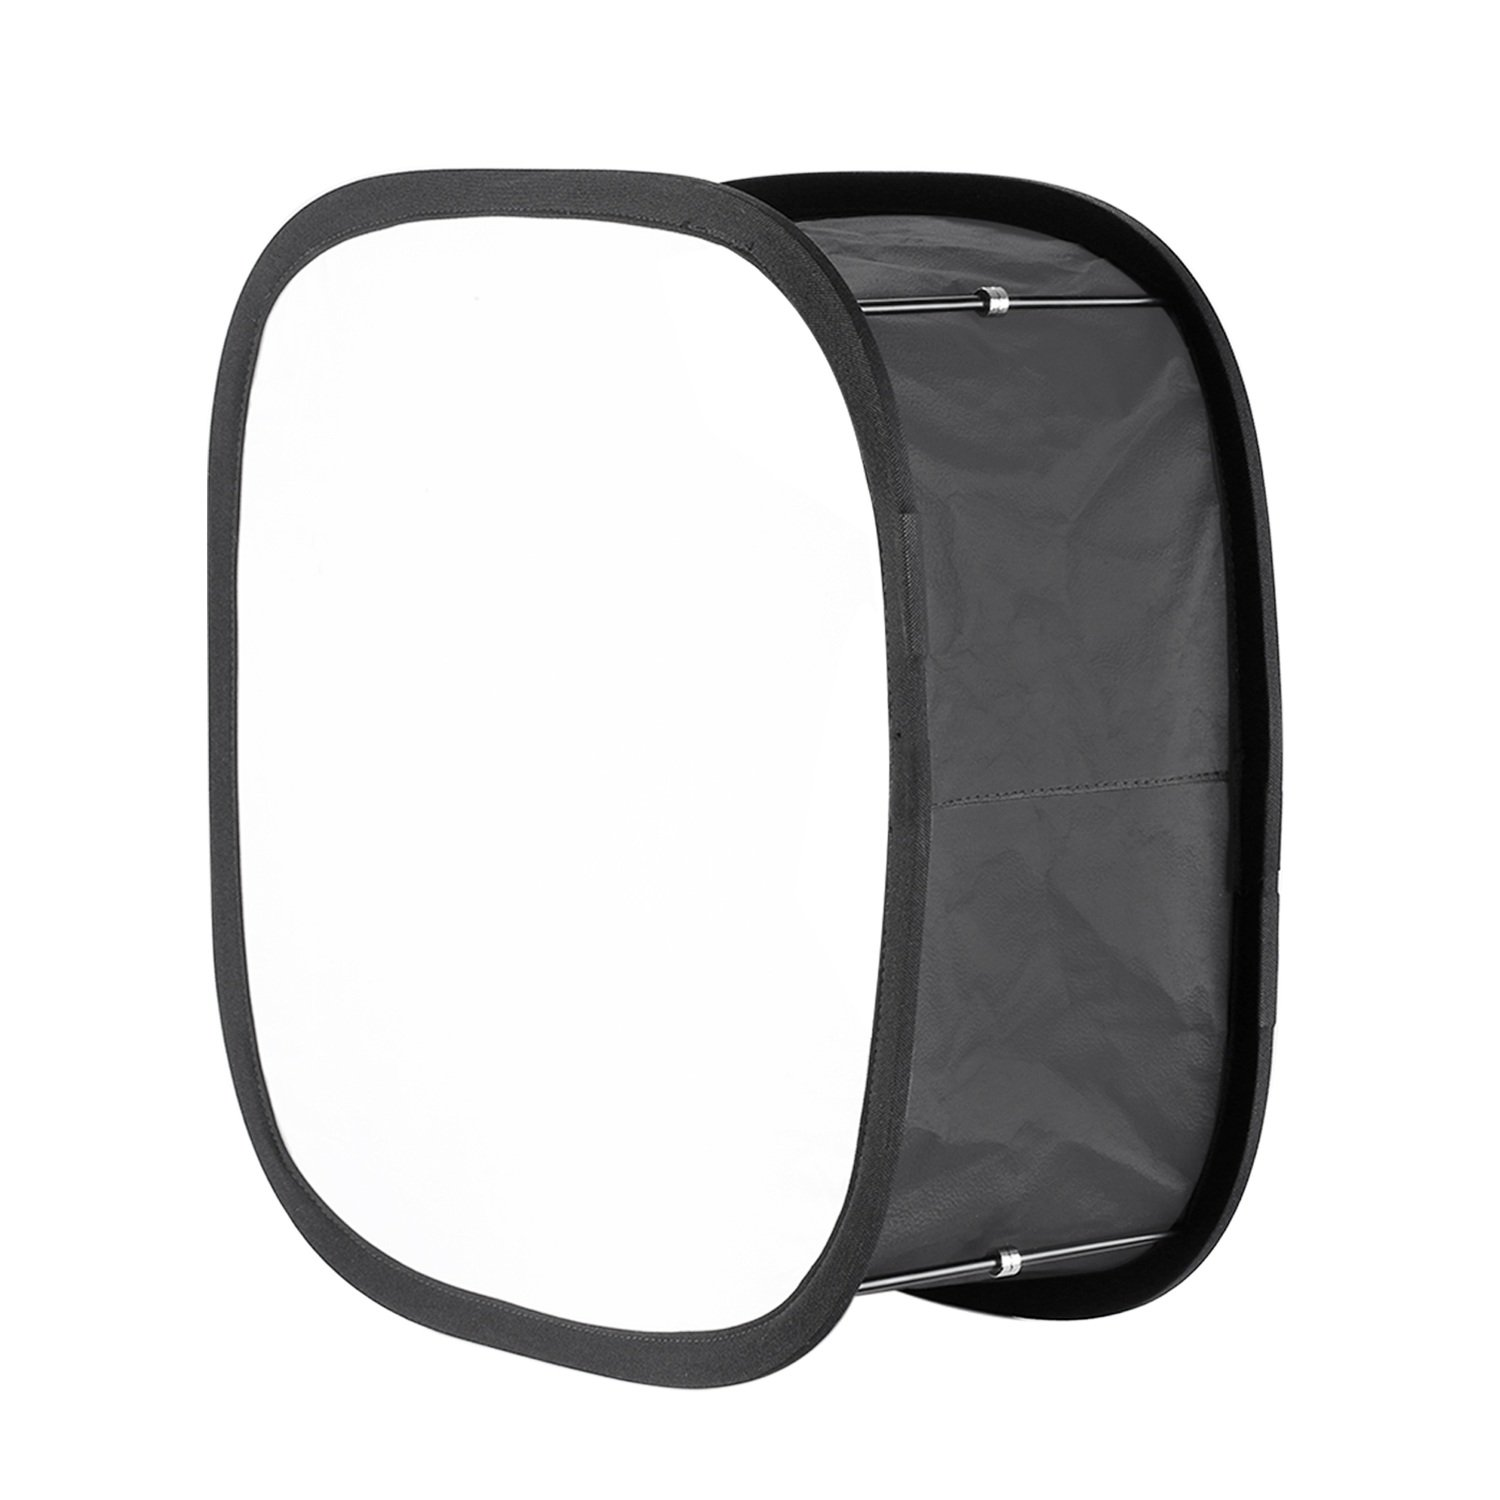 Neewer Collapsible Softbox Diffuser for 480 LED Panel -...